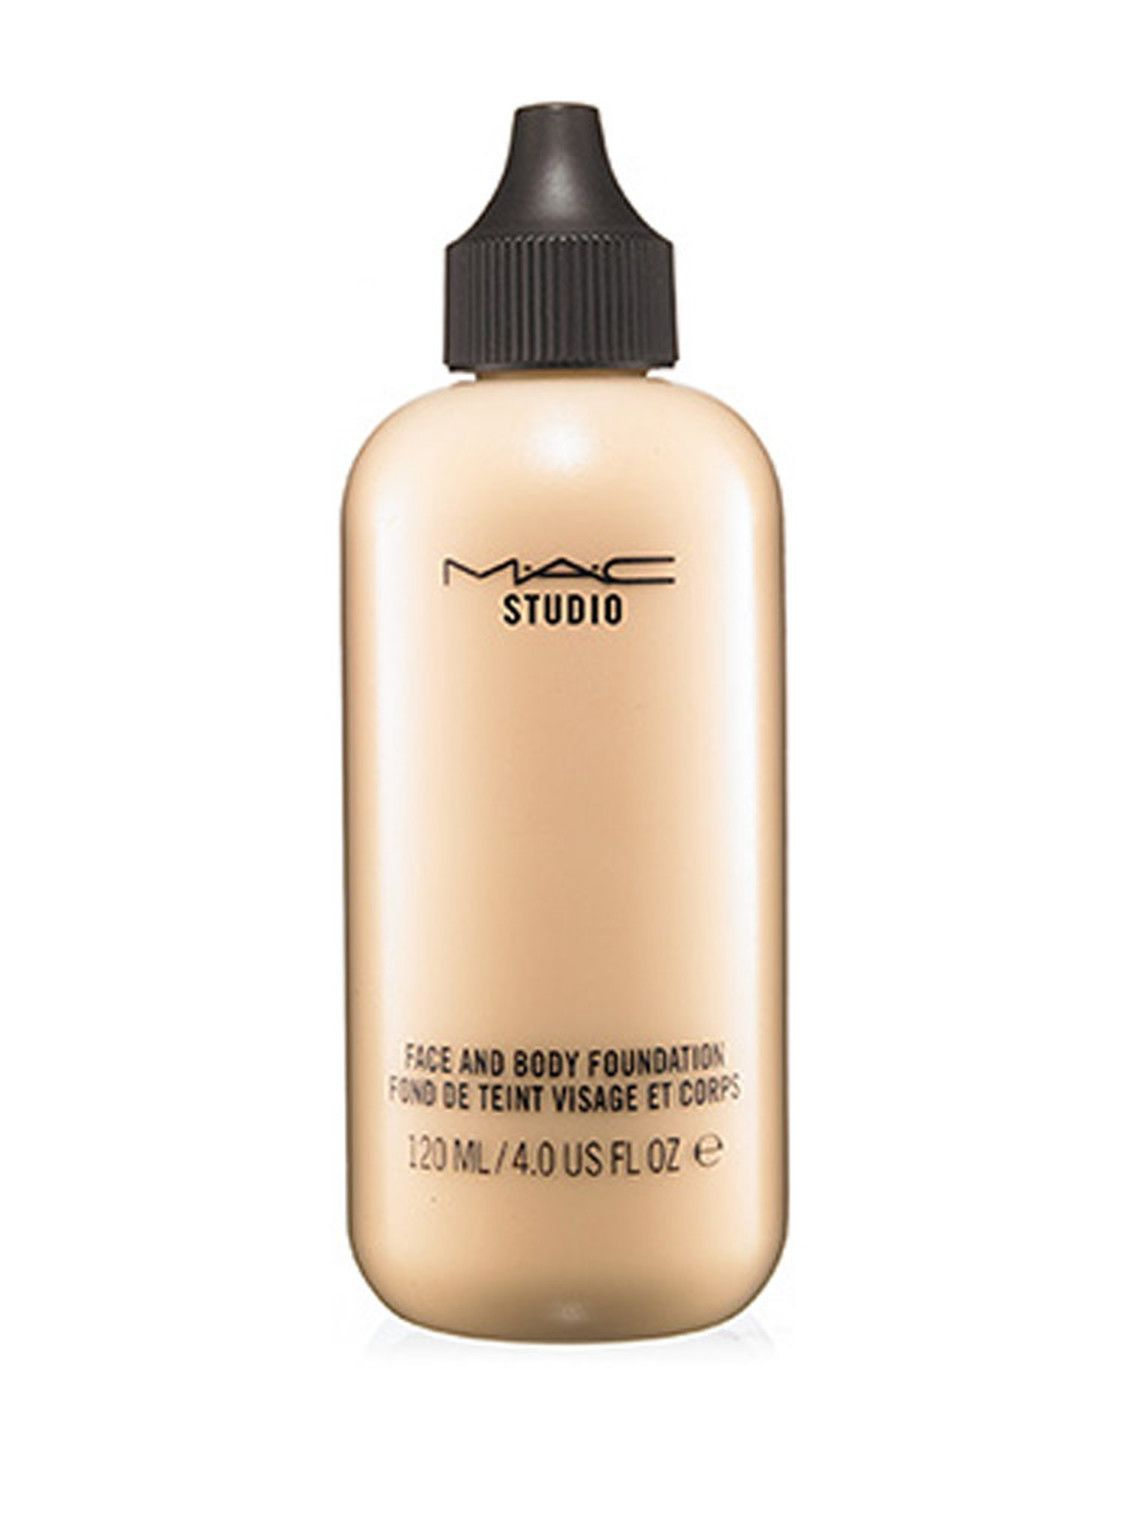 M.A.C Studio Face And Body Foundation 120 MlM.A.C Studio Face And Body Foundation 120 Ml   (37,08 € / 100 ml)